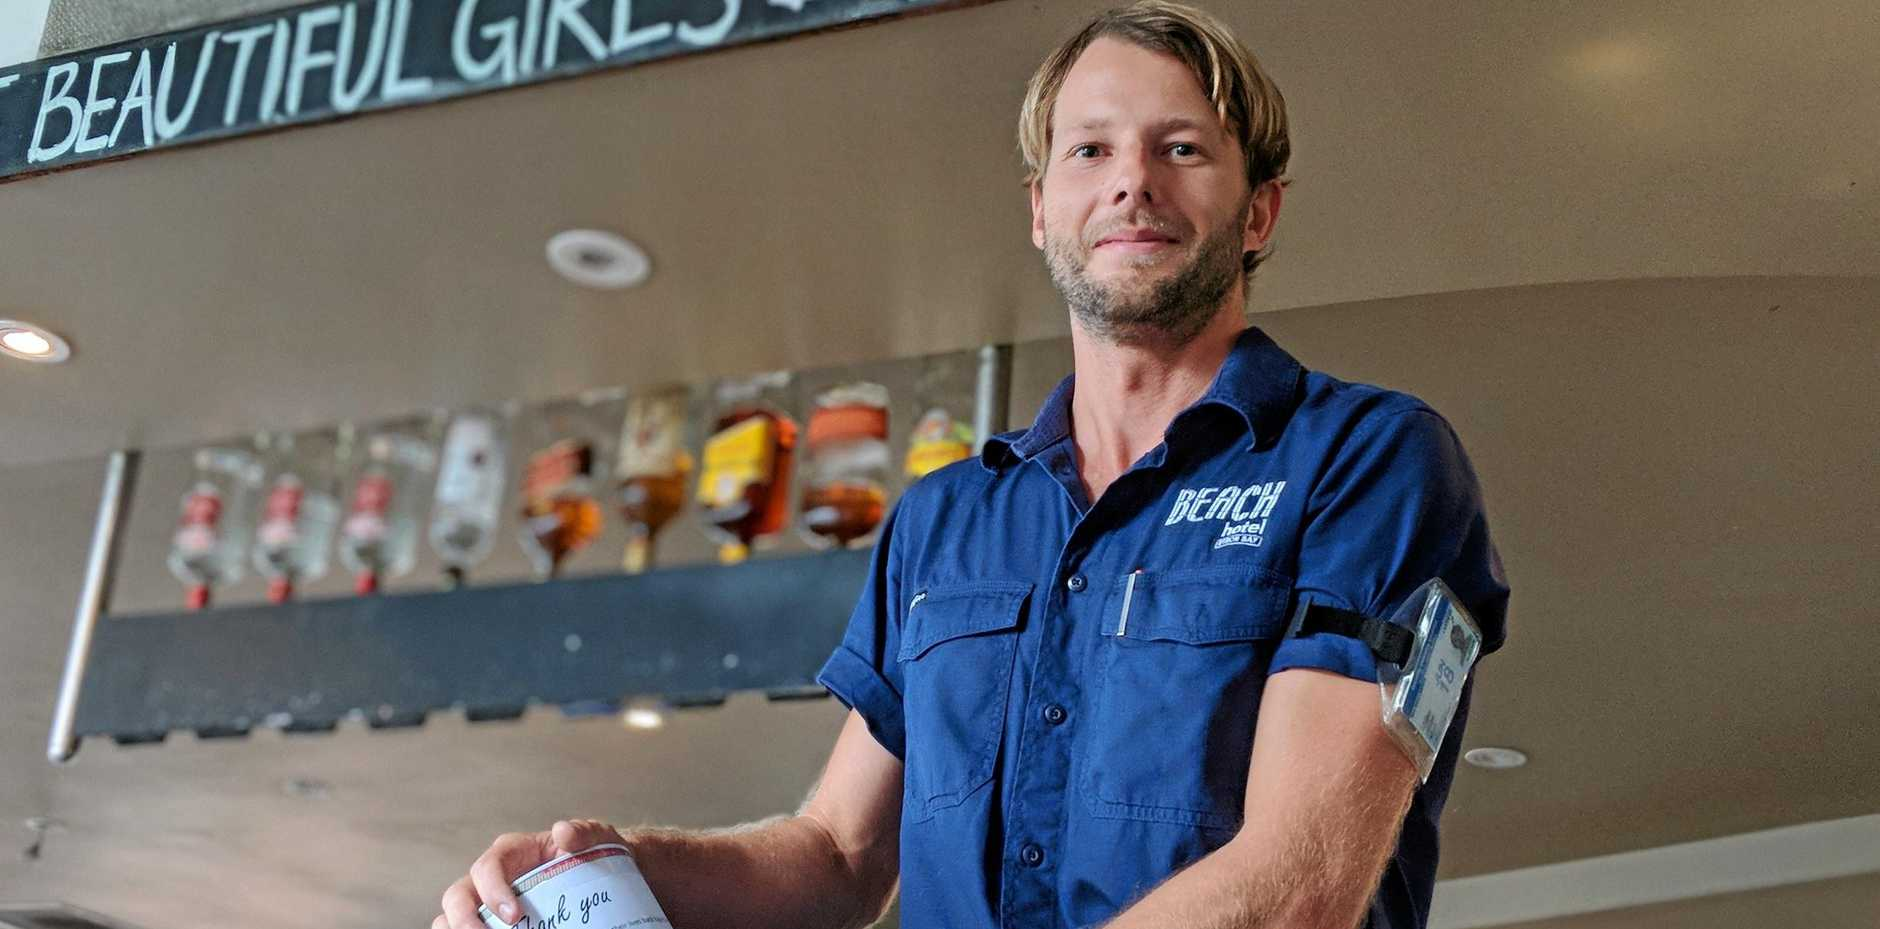 POKIE FREE: Beach Hotel manager Marc Labonte encourages donations to The Buttery, as part of the hotel's event to celebrate going Pokies Free on the weekend.